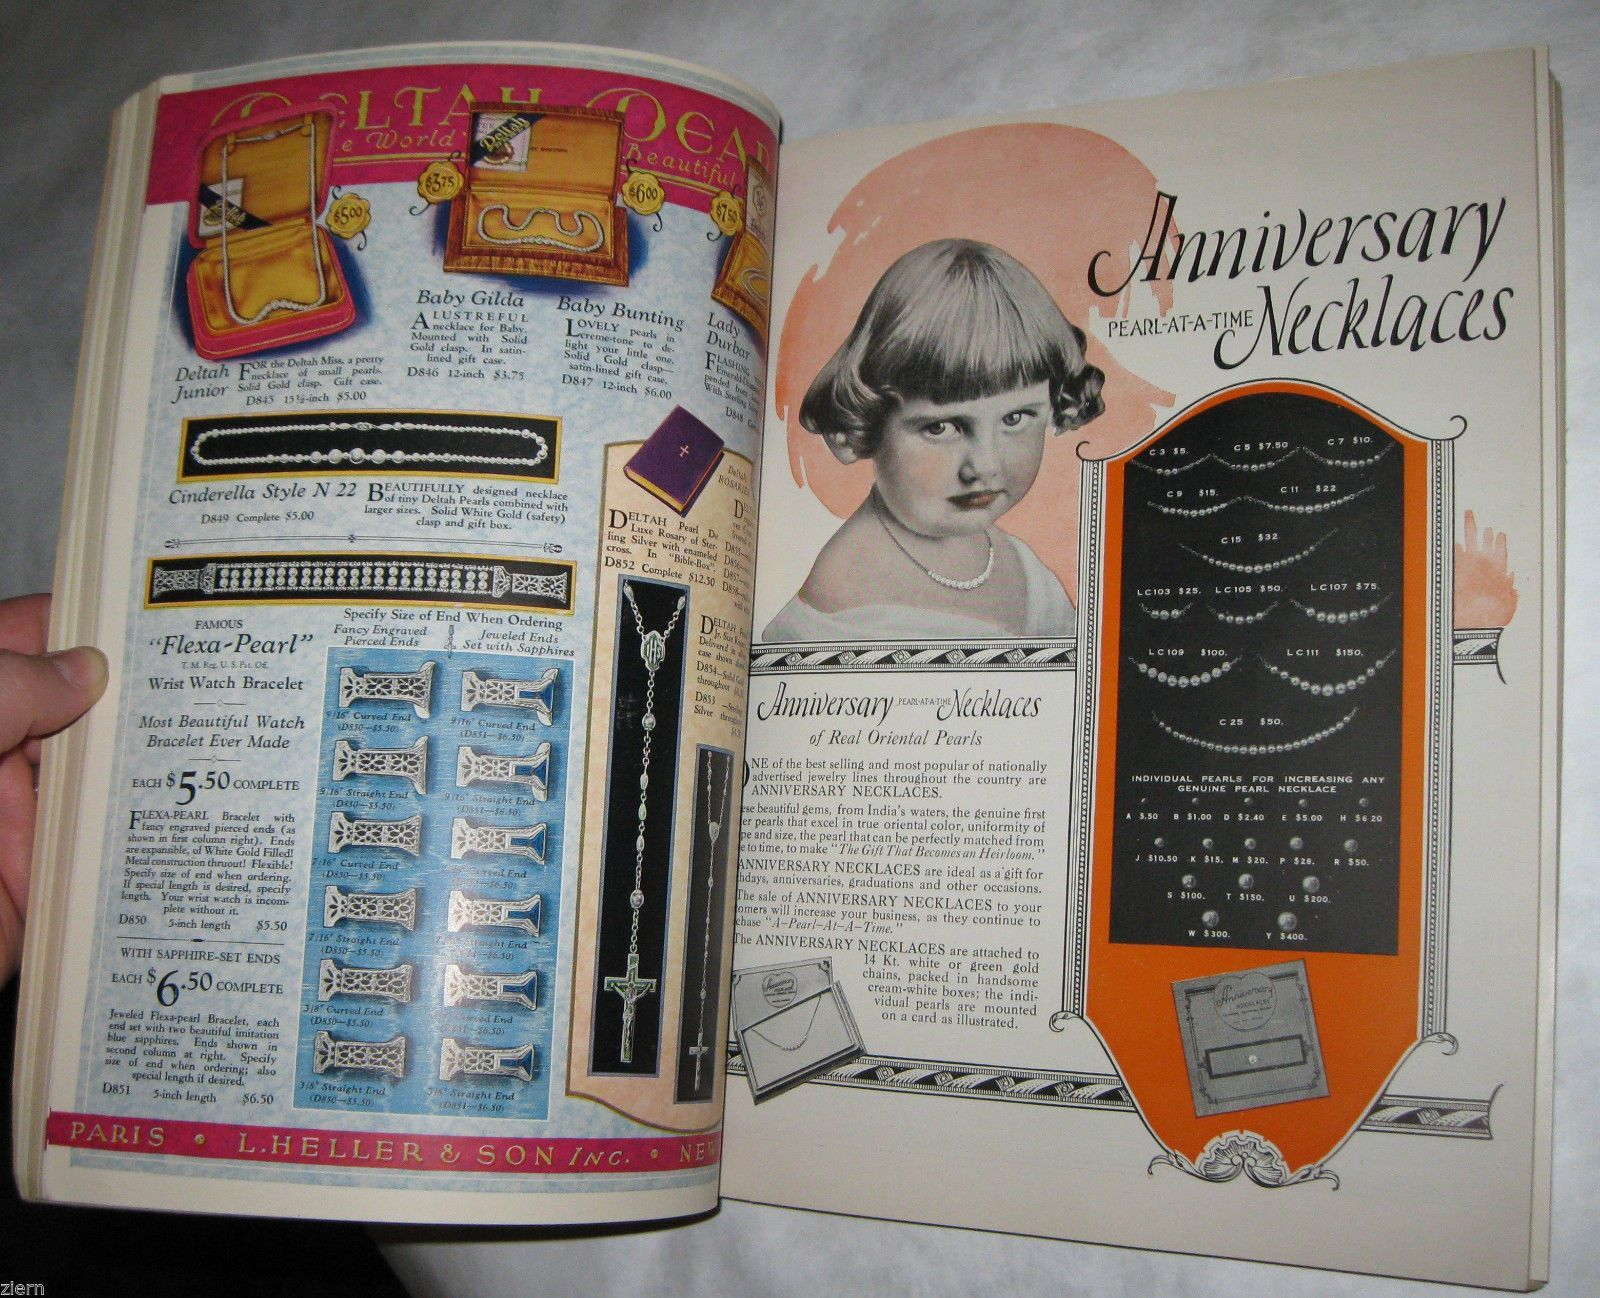 1937 Art Deco Era Merchandise Catalog 375 Pages Toys Jewelry Clothing Furniture Antiques